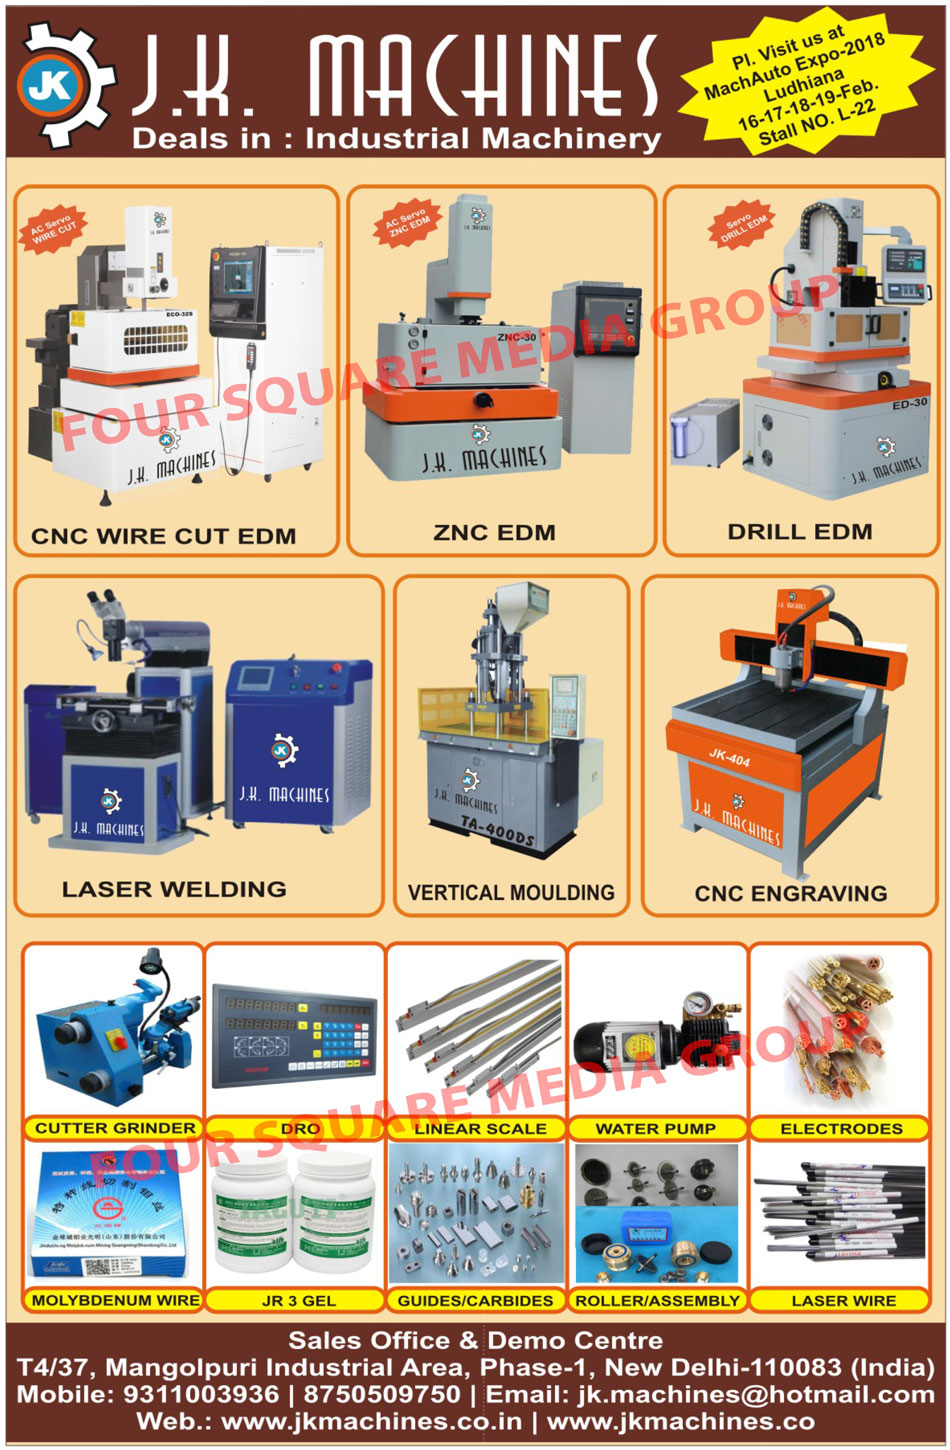 CNC EDM Machines, ZNC EDM Machines, EDM Drill Machines, EDM Drilling Machines, CNC Wirecut Machines, VMC Machines, CNC Engraving Machines, Laser Marking Machines, Laser Welding Machines, ECO CNC Lathe Machines, Injection Moulding Machines, Wood Router, Plastic Router, Stone Router, DRO System, Linear Scales, Cutter Grinder, Special Purpose Machines, Tool Room Machines, ECO CNC Wire Cut Machines, Video Measuring Machines, Vertical Moulding Machines, Vertical Molding Machines, Single Slide Vertical Molding Machines, Double Slide Vertical Molding Machines, Rotary Vertical Molding Machines, Double Colour Vertical Molding Machines, Double Color Vertical Molding Machines, Thermo Setting Vertical Molding Machines, Single Slide Vertical Moulding Machines, Double Slide Vertical Moulding Machines, Rotary Vertical Moulding Machines, Double Colour Vertical Moulding Machines, Double Color Vertical Moulding Machines, Thermo Setting Vertical Moulding Machines